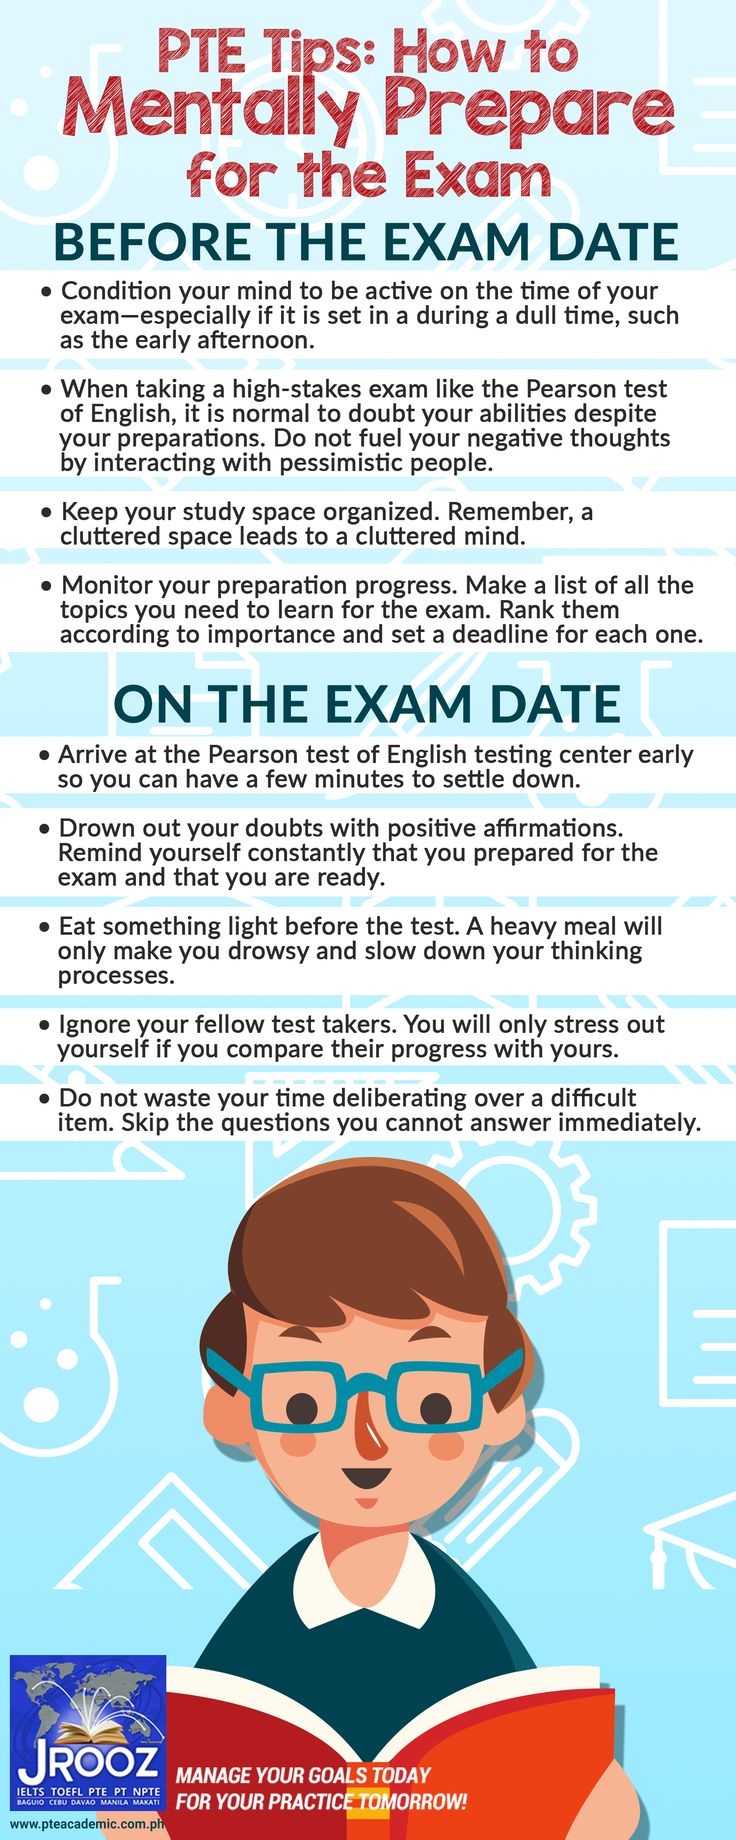 PTE Tips:  How to Mentally Prepare for the Exam - No matter how hard you study for the Pearson test of English, your efforts can go to waste if you do not prepare mentally for the exam. Use these tips to get the right mindset and improve your test performance.